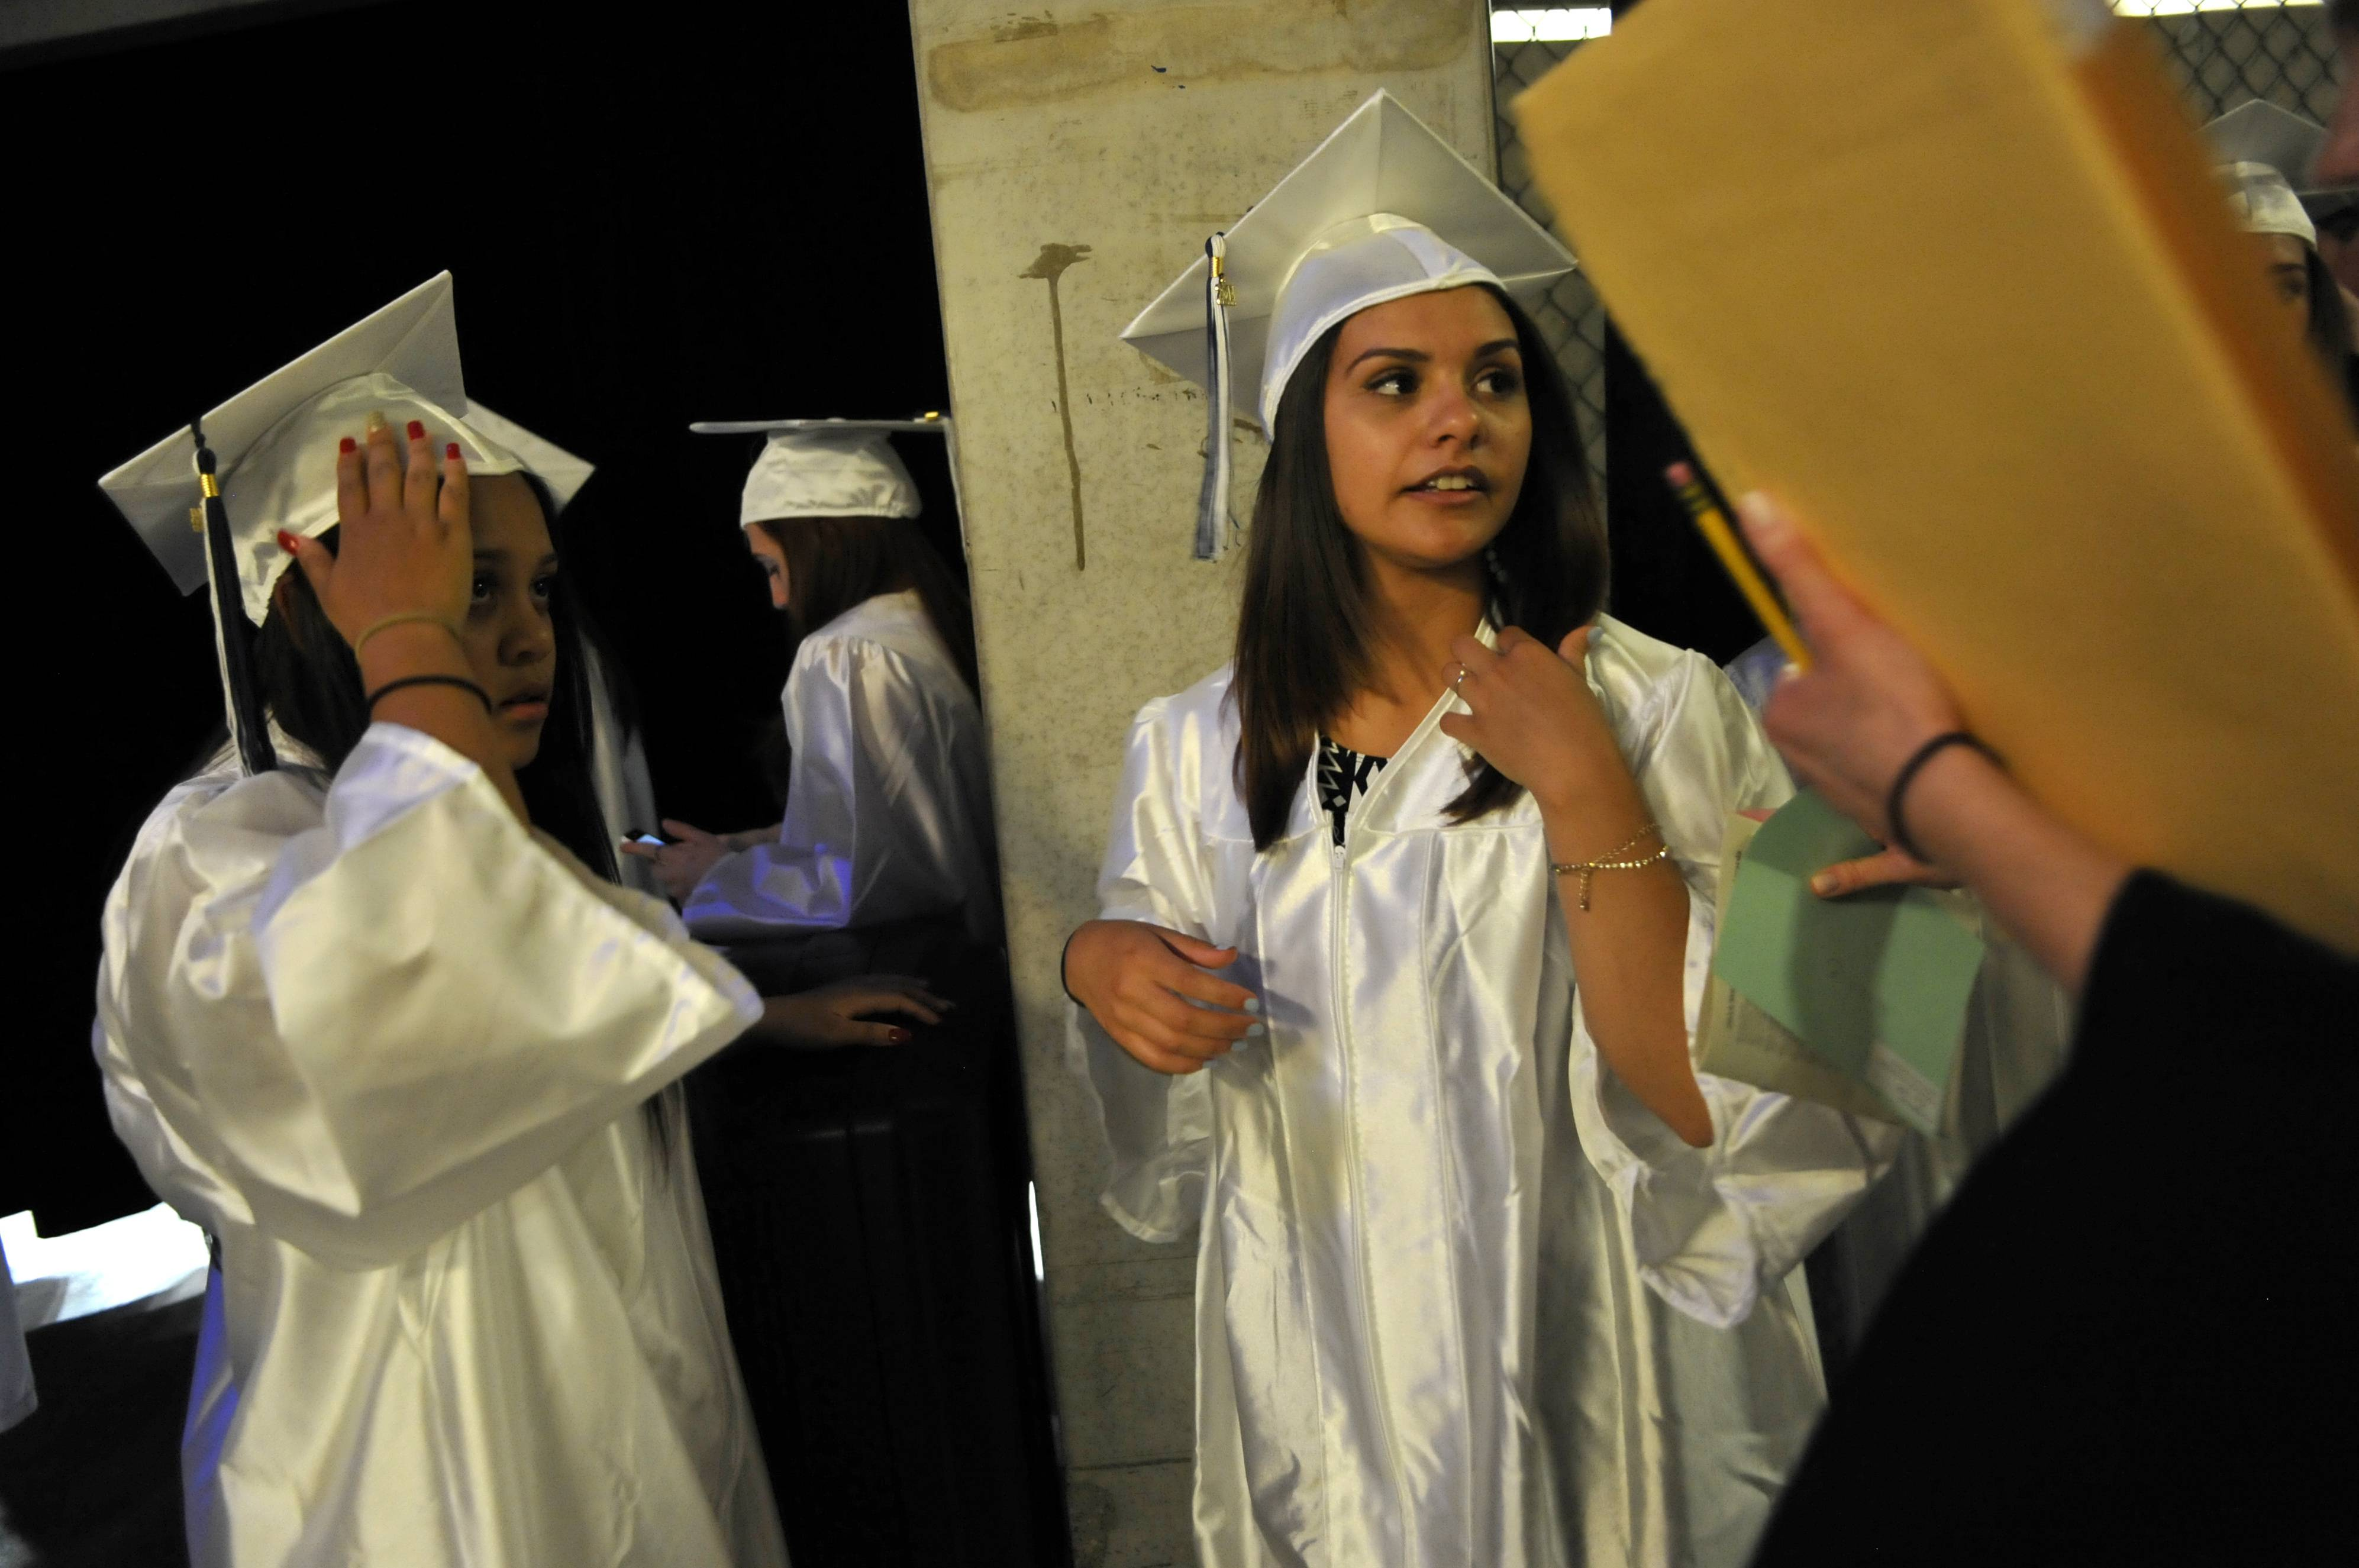 Lake Park High School held its graduation Monday, June 2 at Sears Centre in Hoffman Estates.